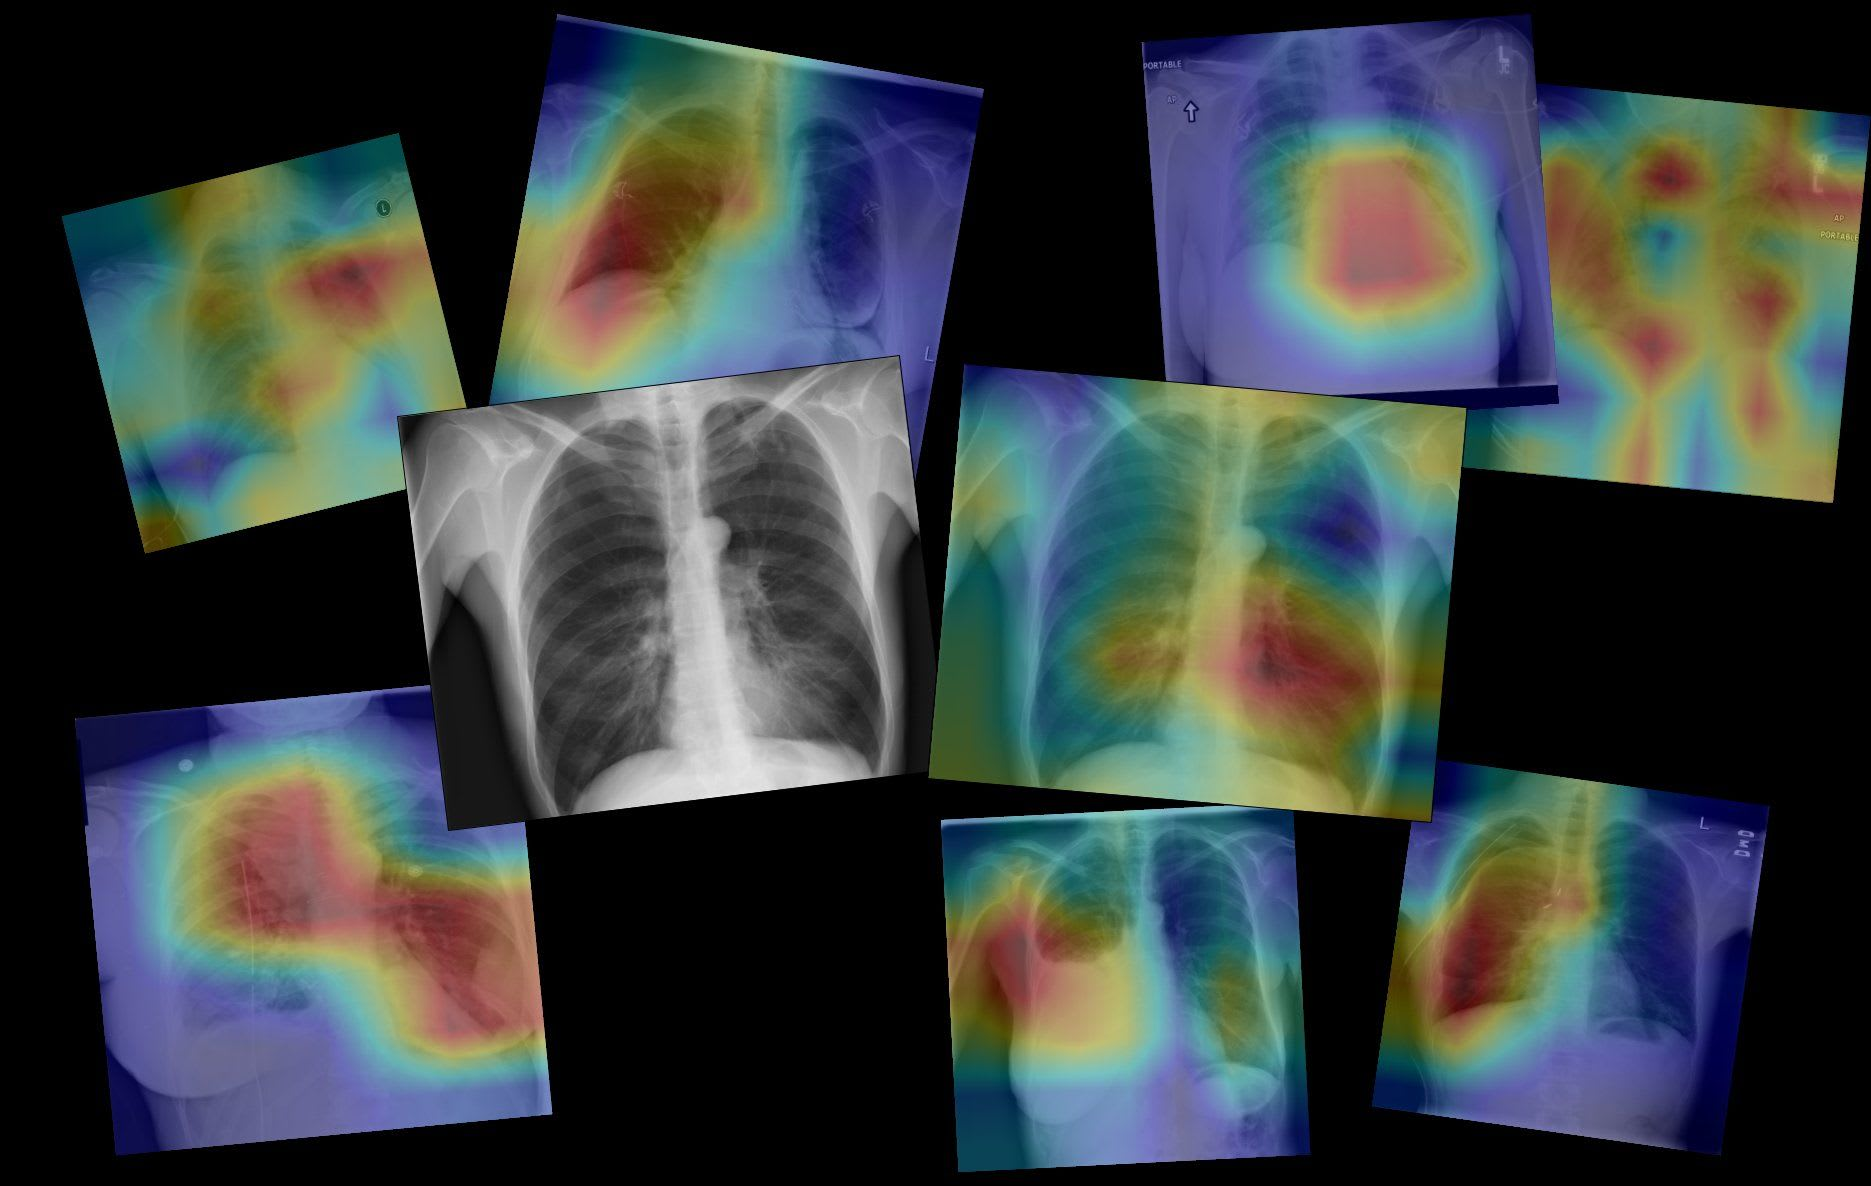 Coding a CNN for Medical Imaging using TensorFlow 2